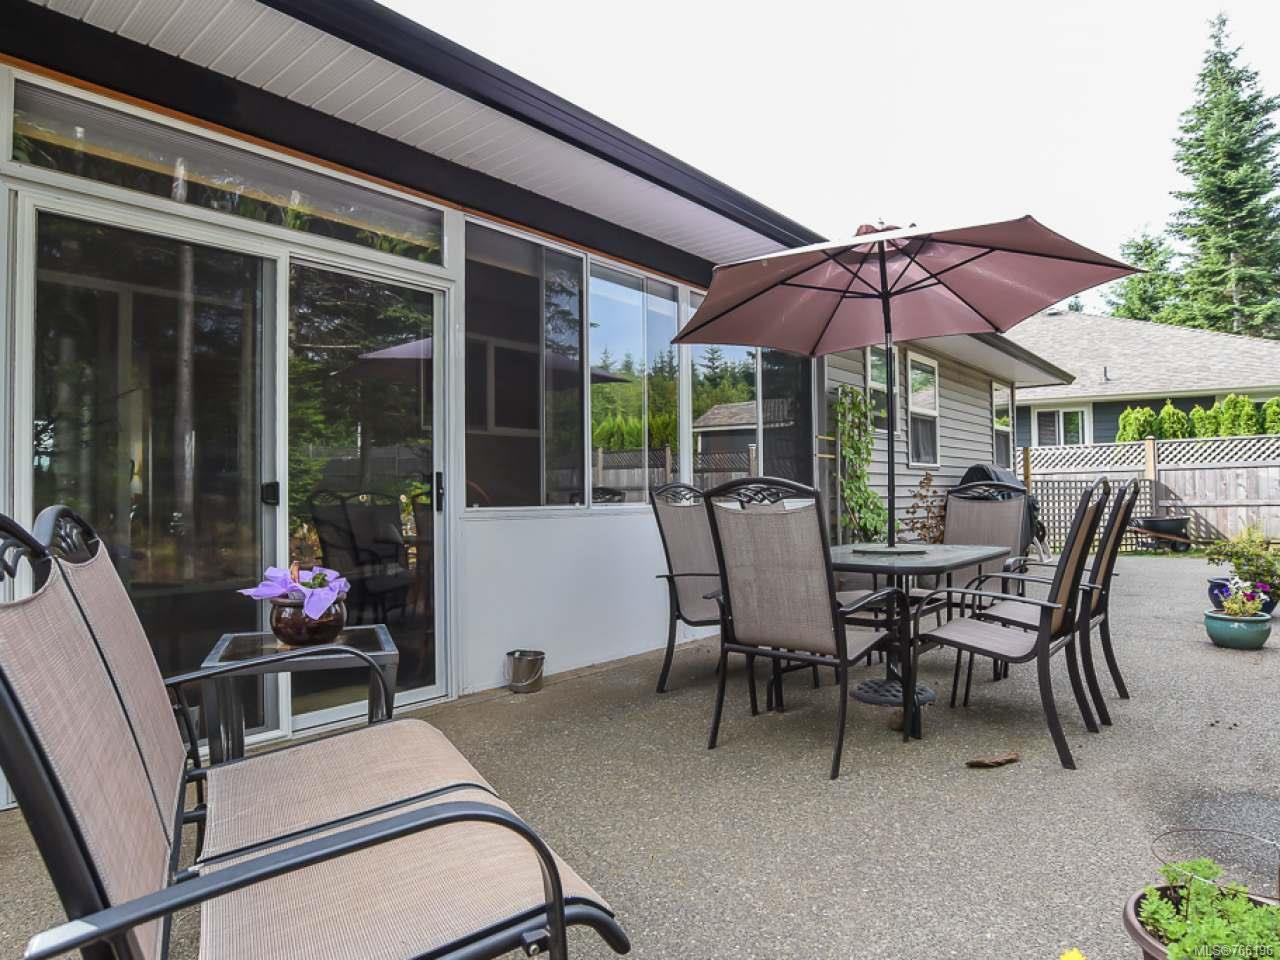 Photo 9: Photos: 1127 Cordero Cres in CAMPBELL RIVER: CR Willow Point House for sale (Campbell River)  : MLS®# 766196